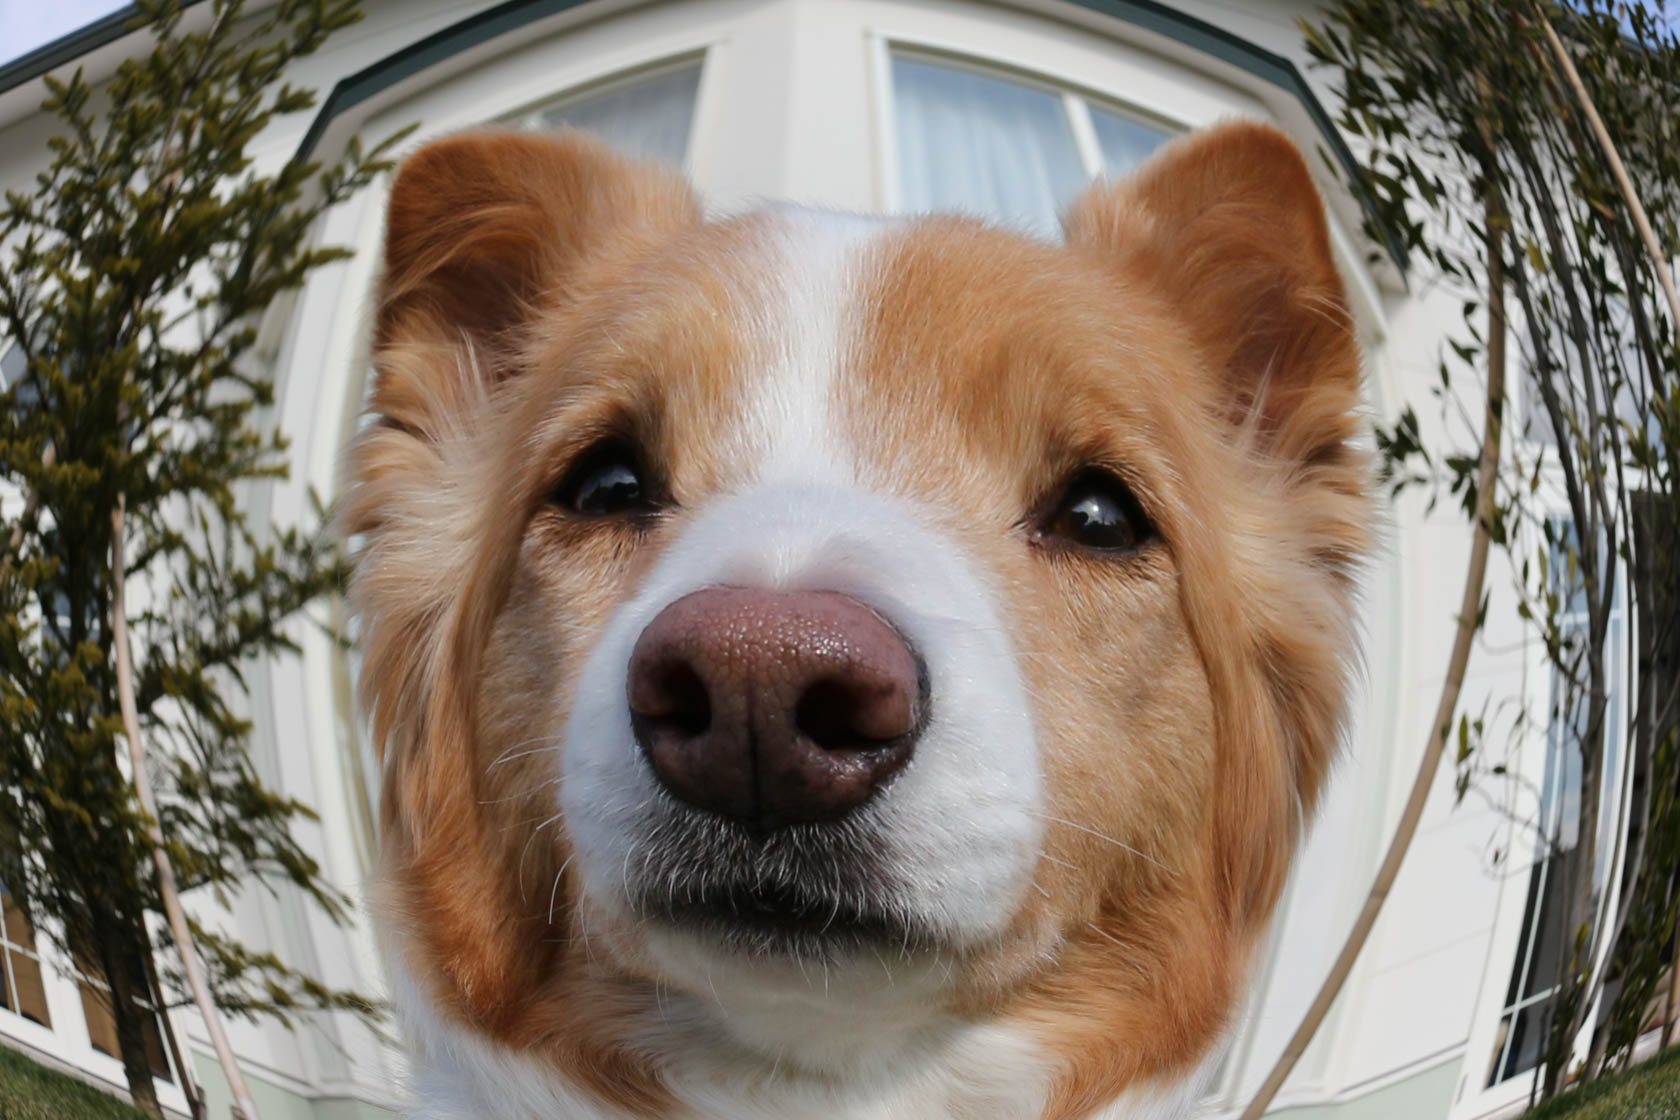 Dog close-up taken with Canon EOS 700D DSLR camera